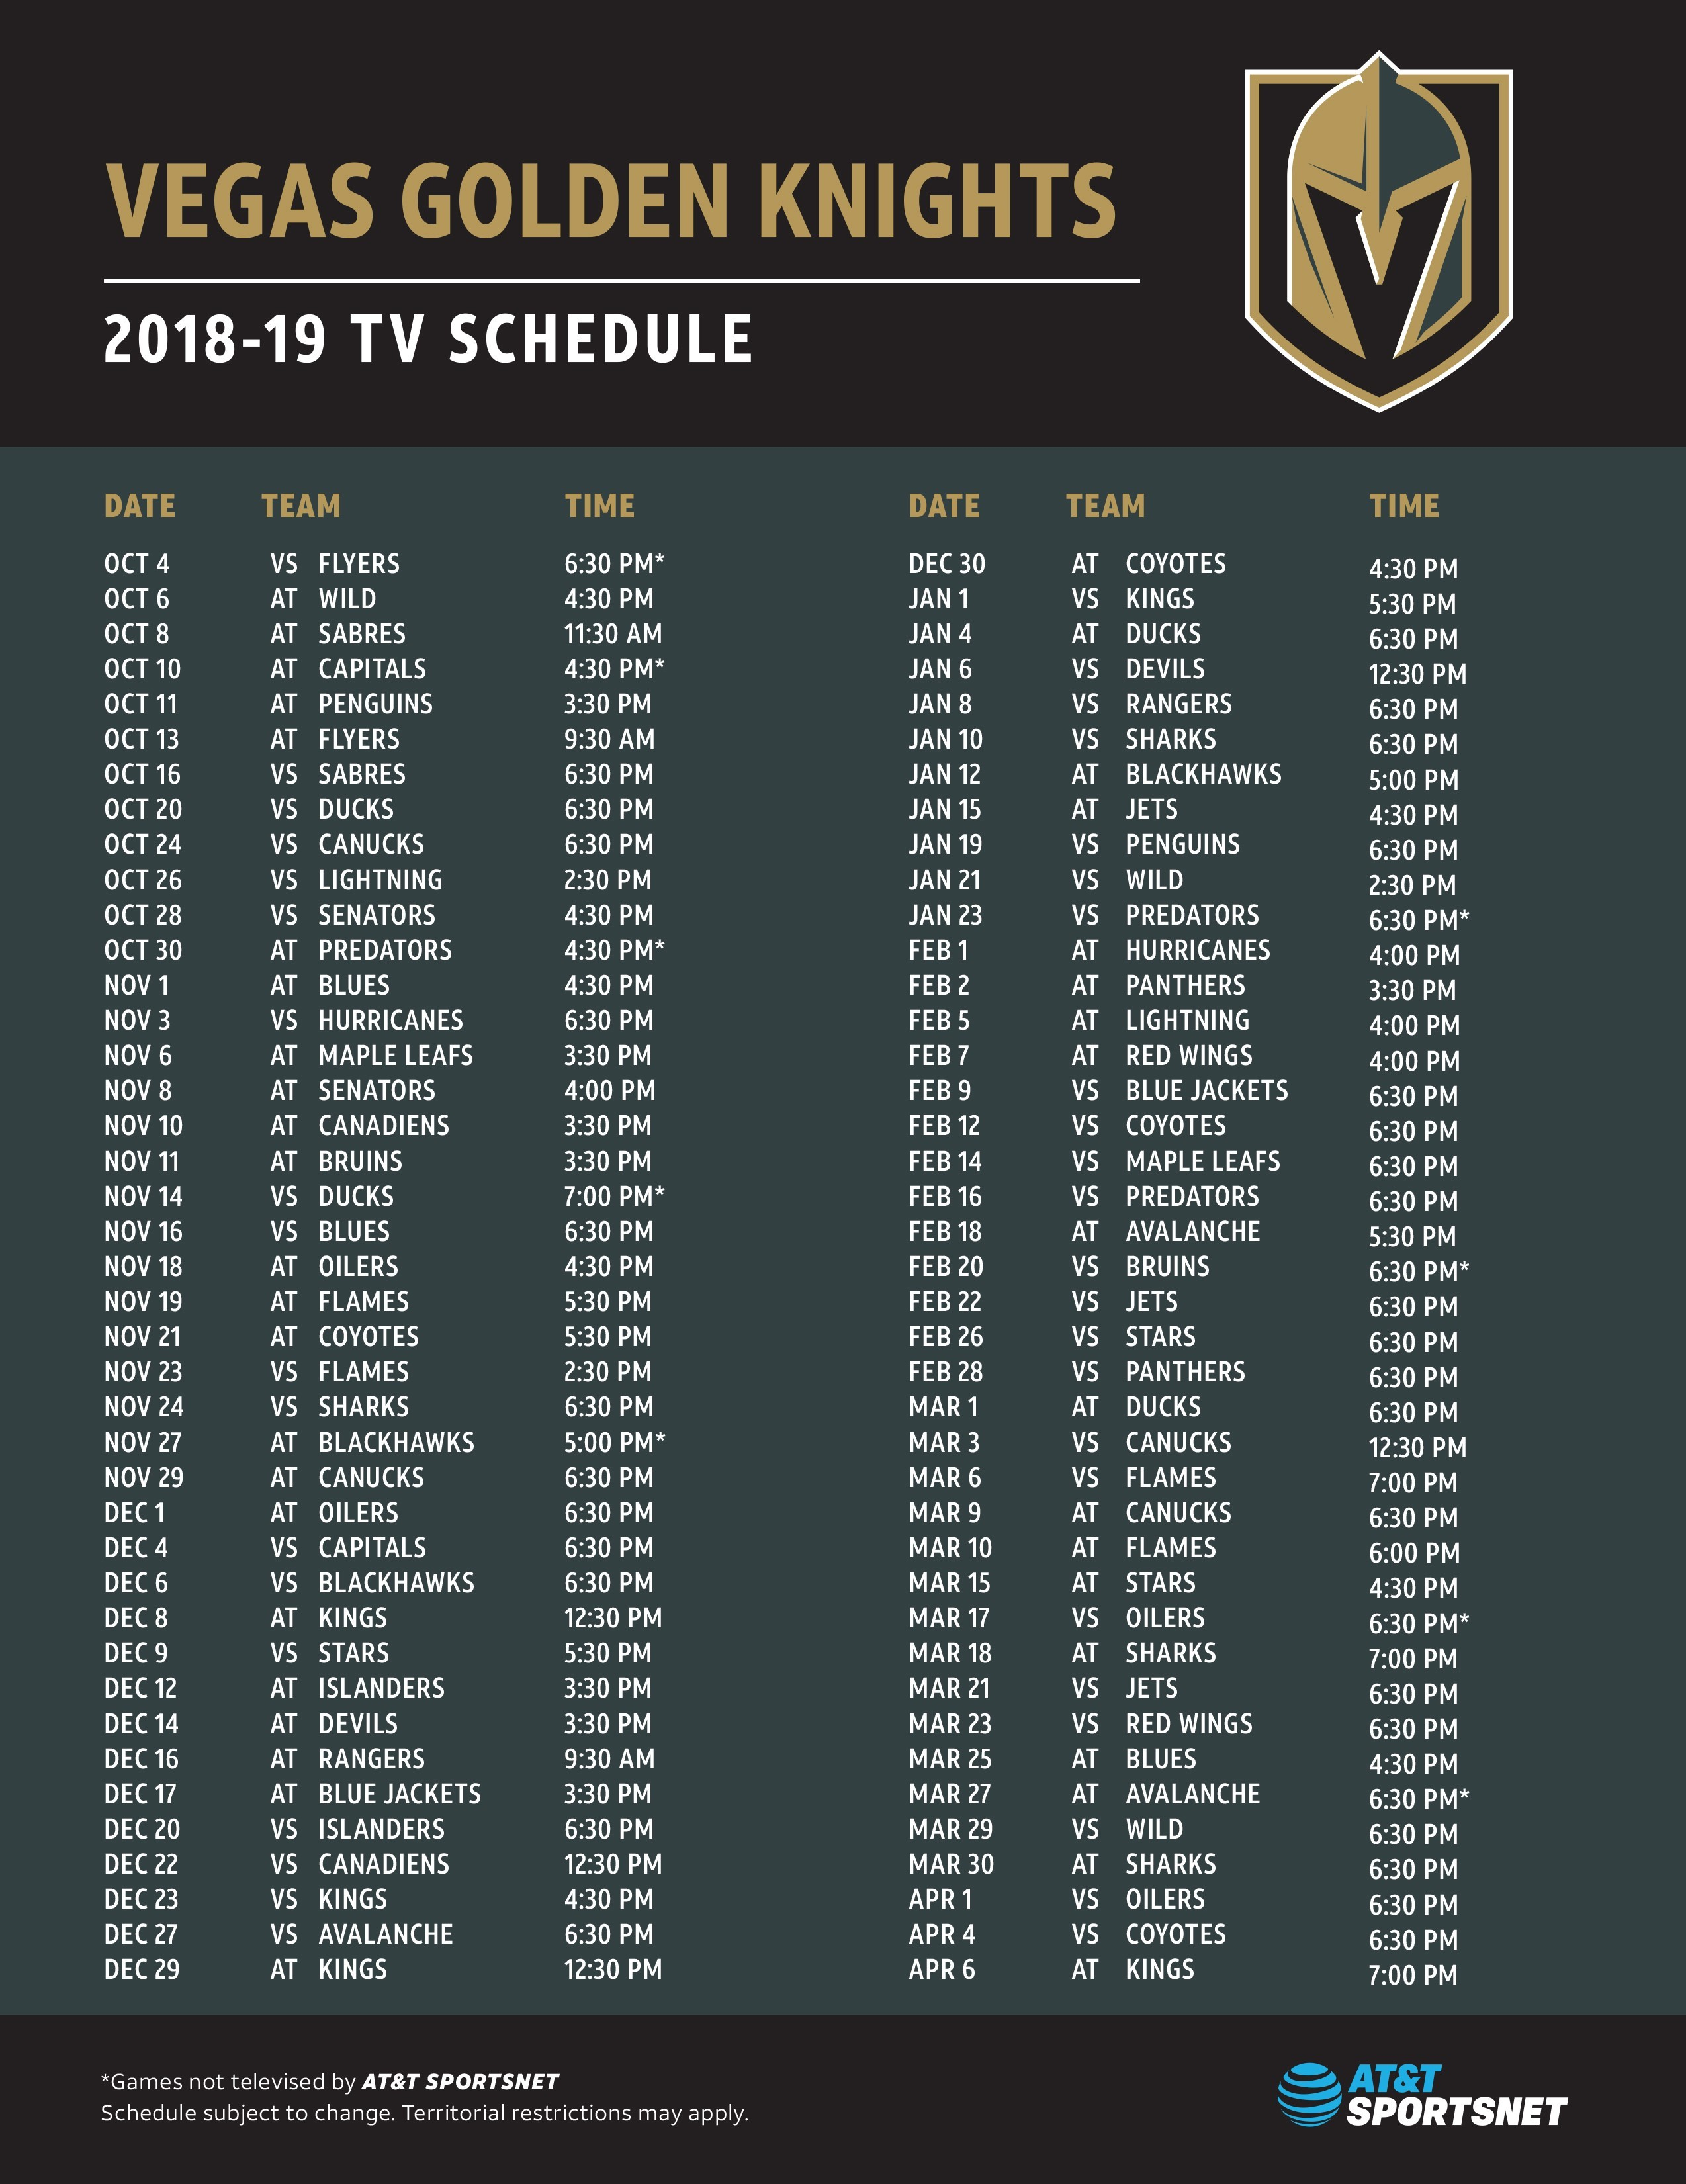 AT T SportsNet Announces Vegas Golden Knights Broadcast Schedule and New  Insider Magazine Show for 2018-19 Season  be7894138